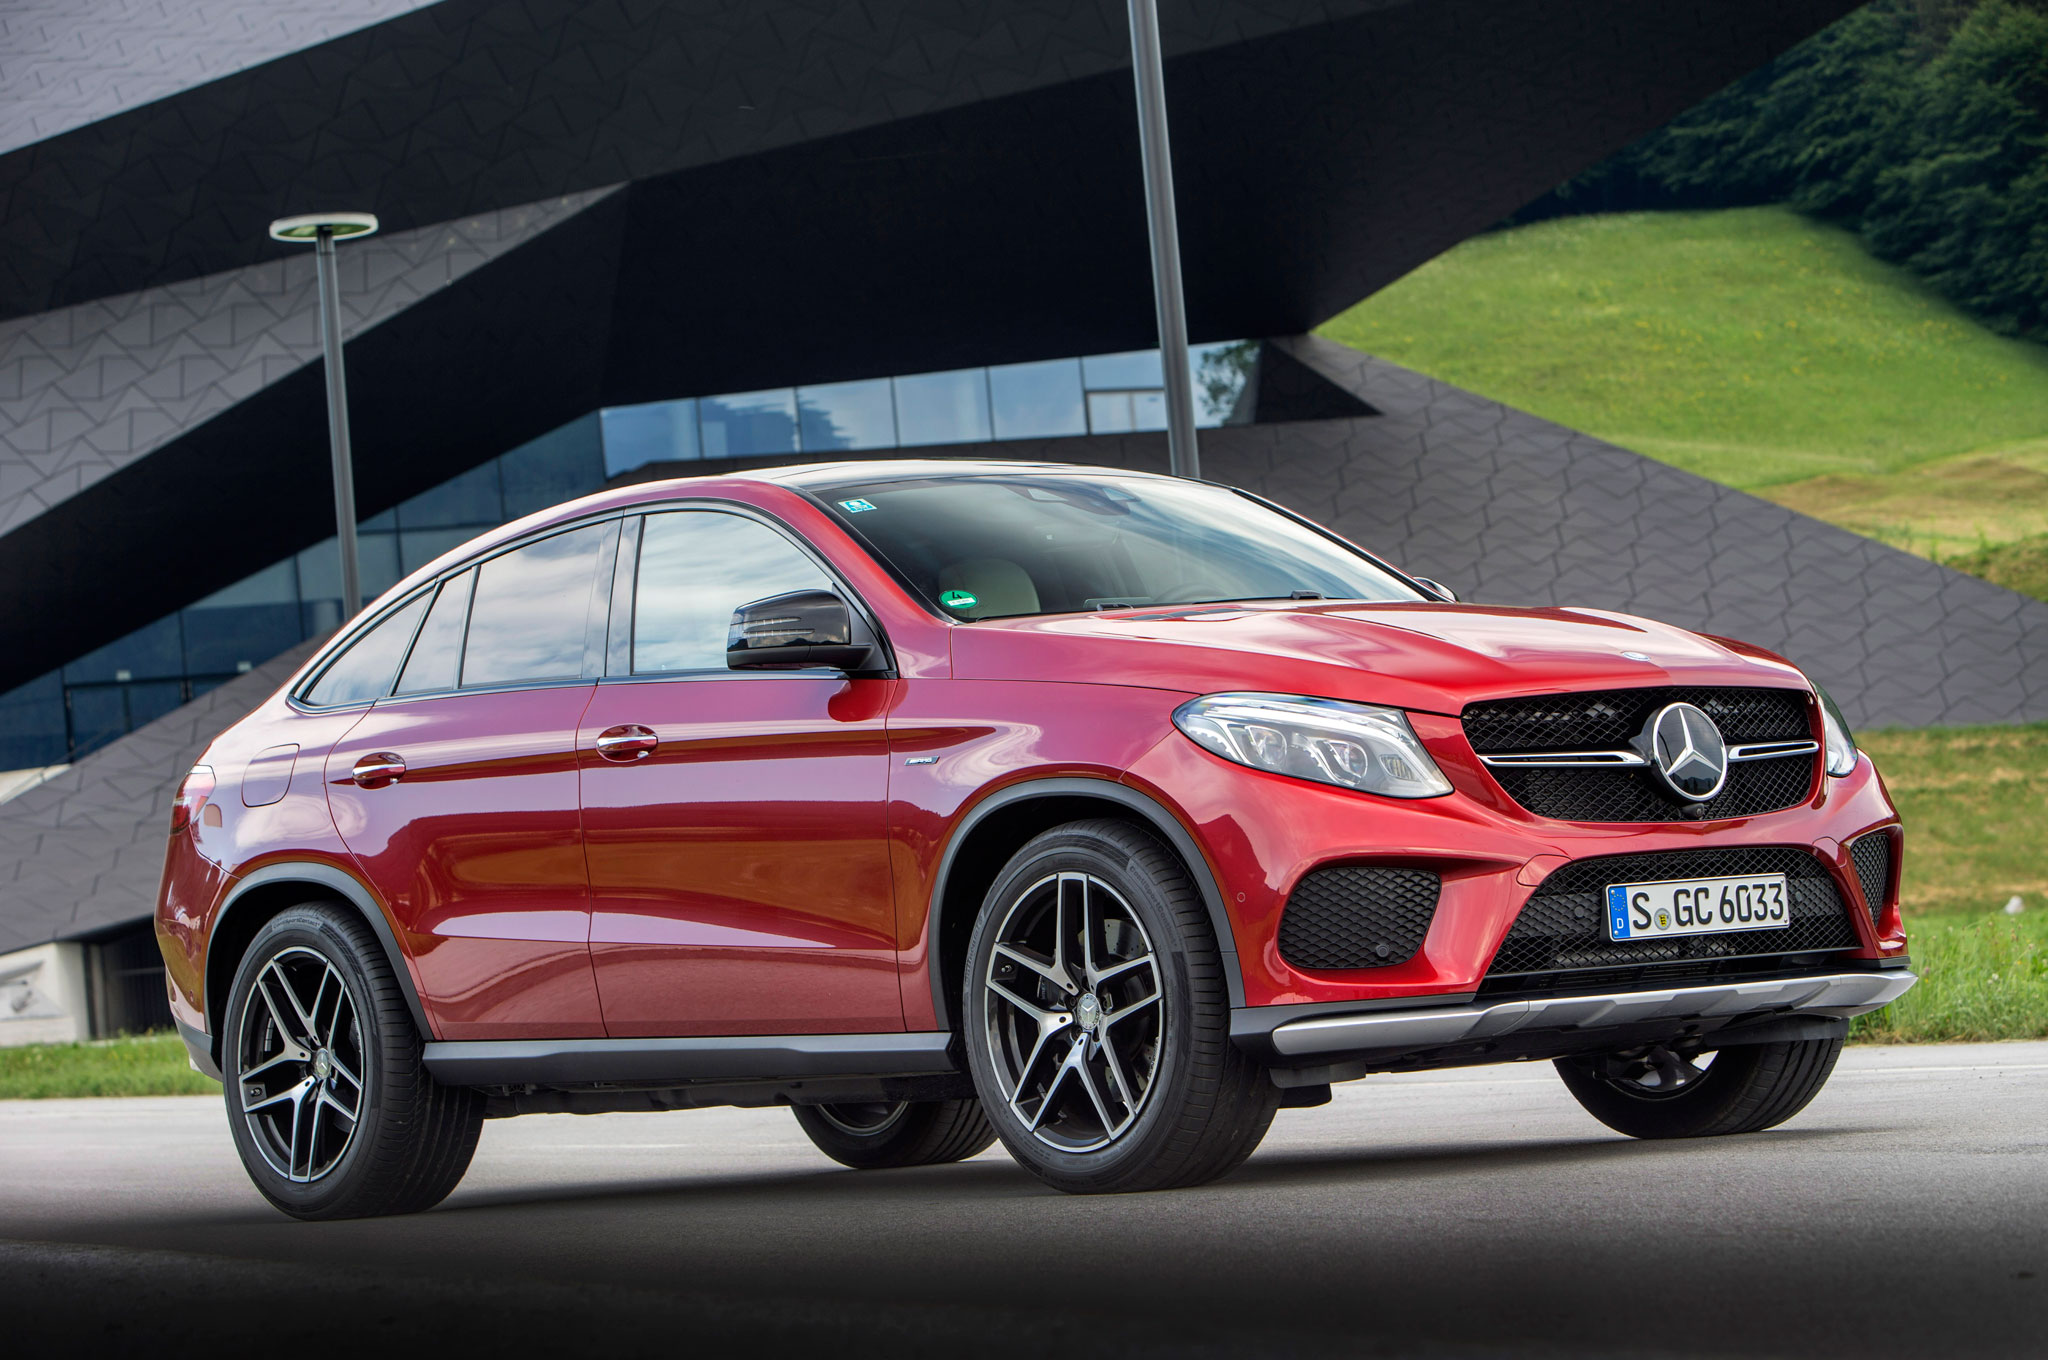 http://st.automobilemag.com/uploads/sites/11/2015/06/2016-Mercedes-Benz-GLE450-AMG-4Matic-Coupe-front-three-quarter-04.jpg